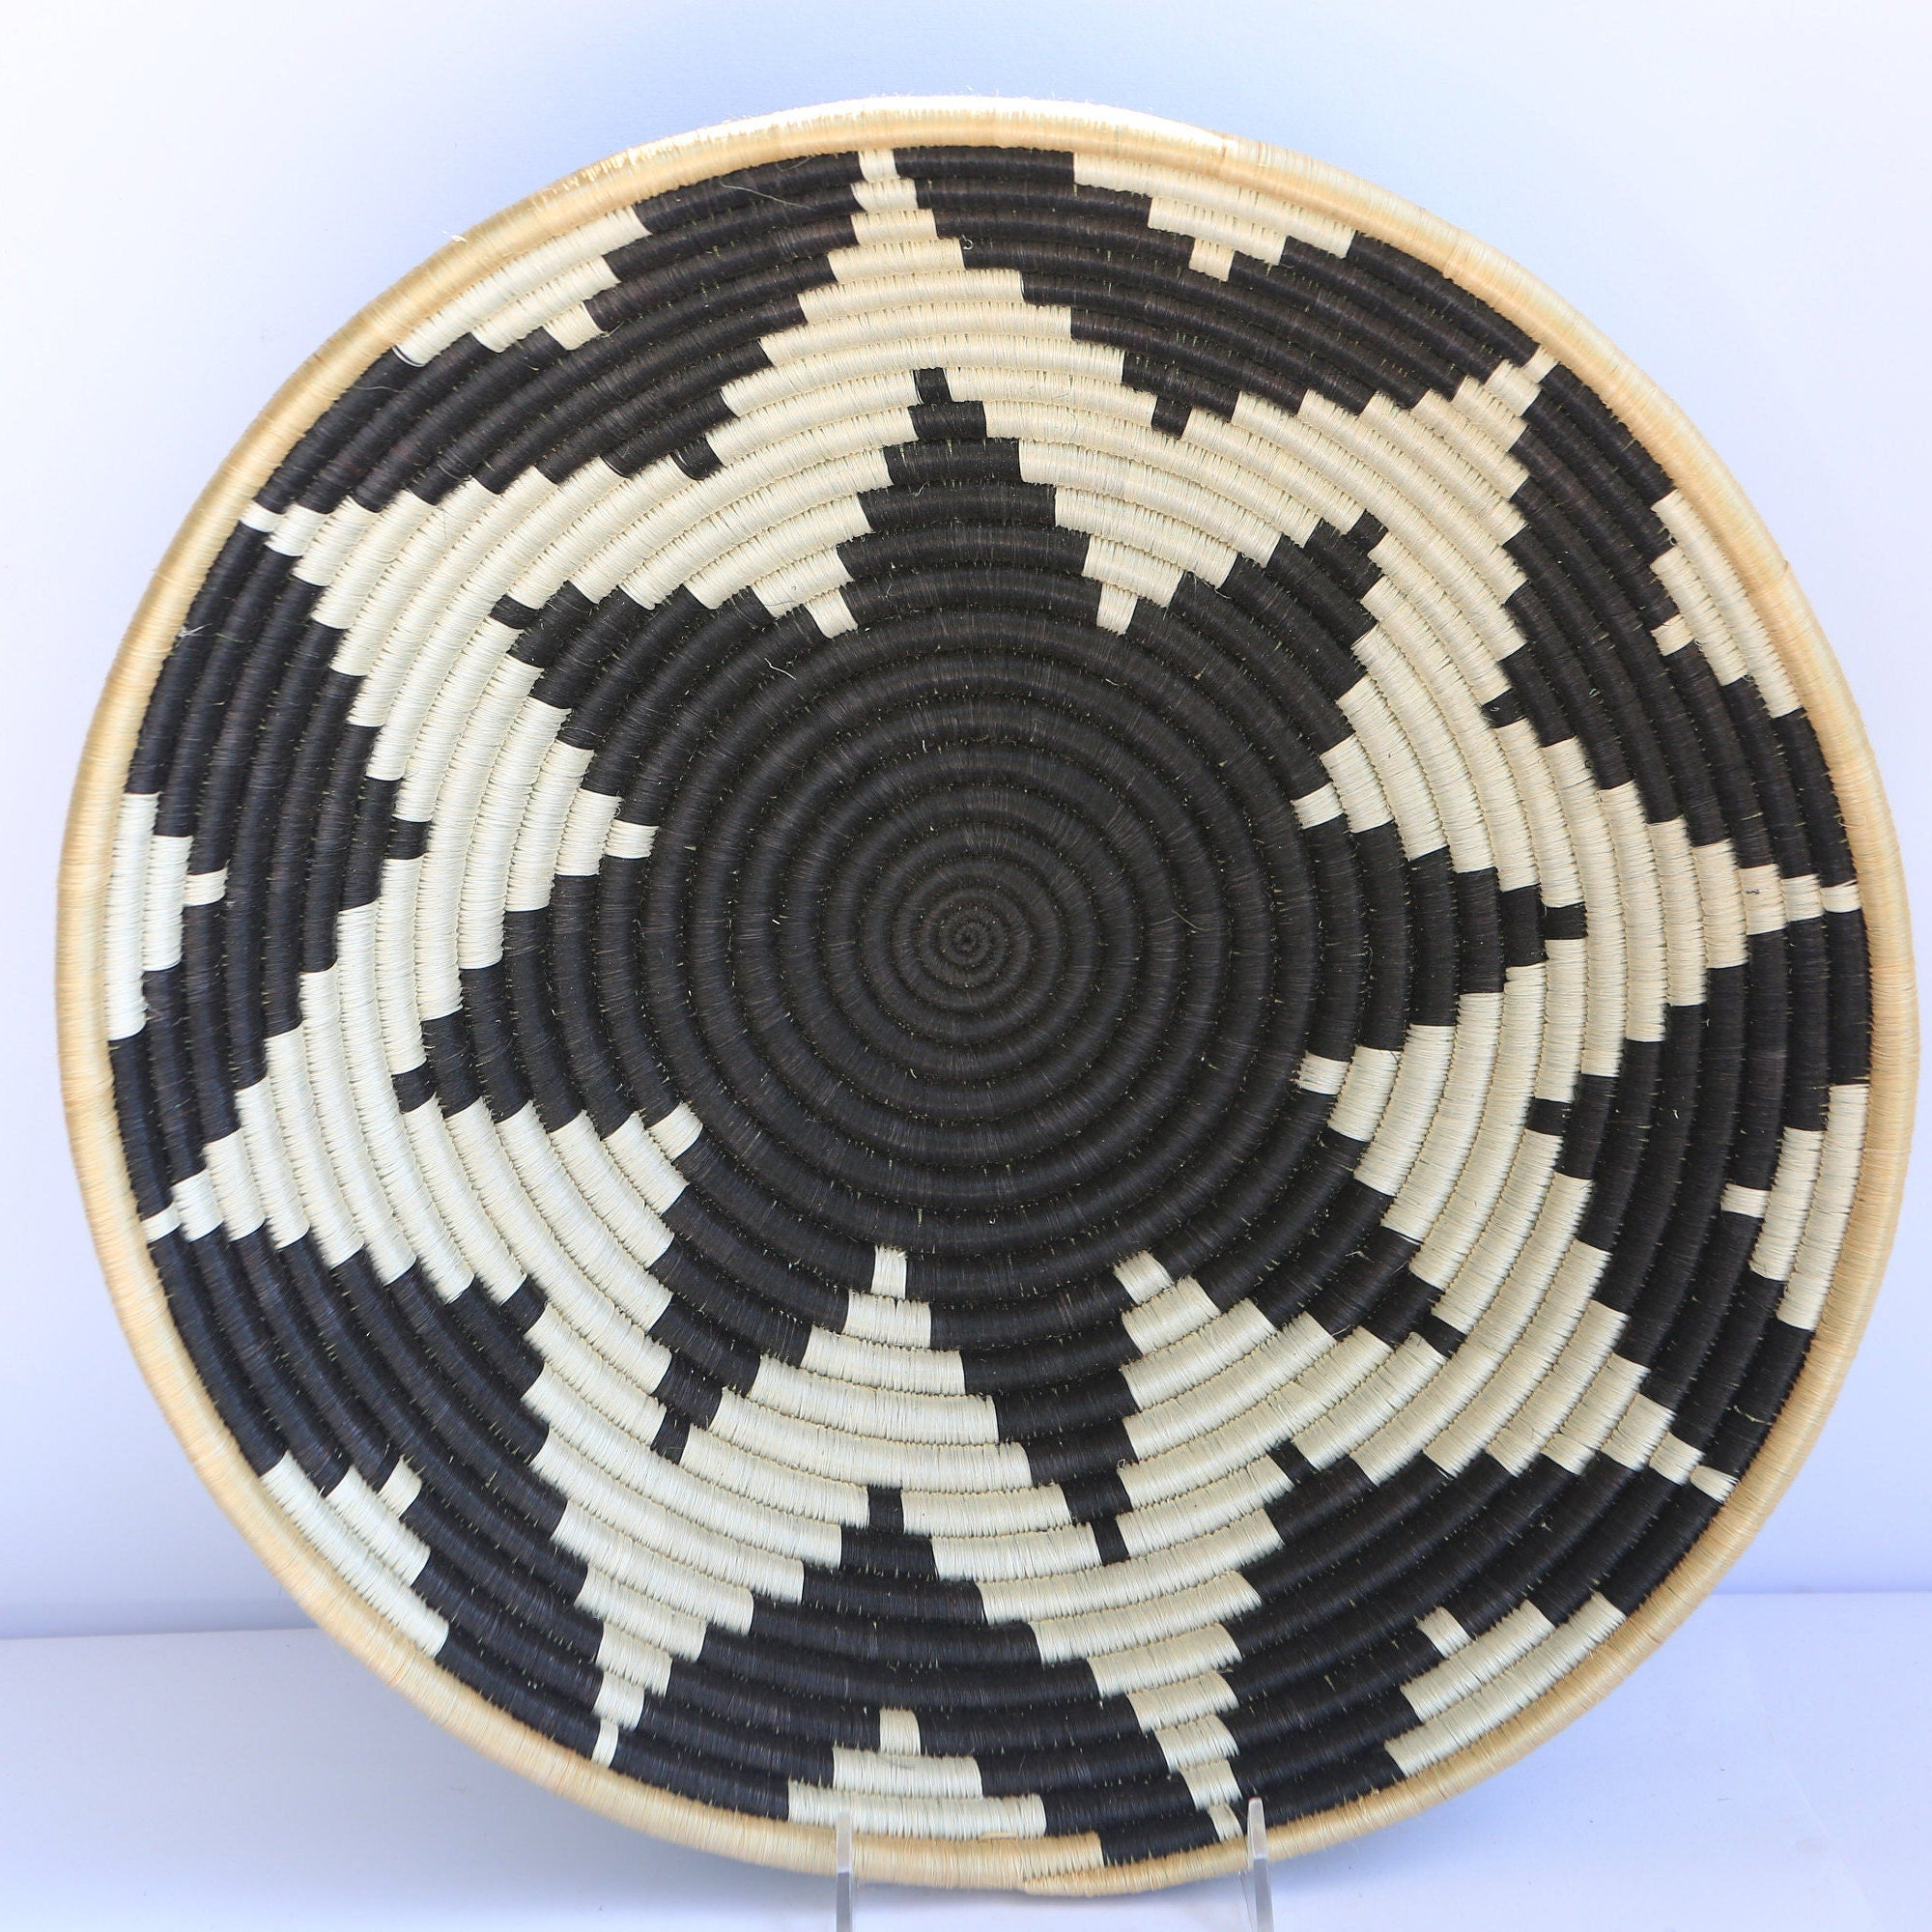 Tabia African Wall Basket, Rwanda baskets, African Woven basket,  Brown, Black and White - African Baskets , African Basket , Rwanda Baskets , Wall baskets Woven Basket